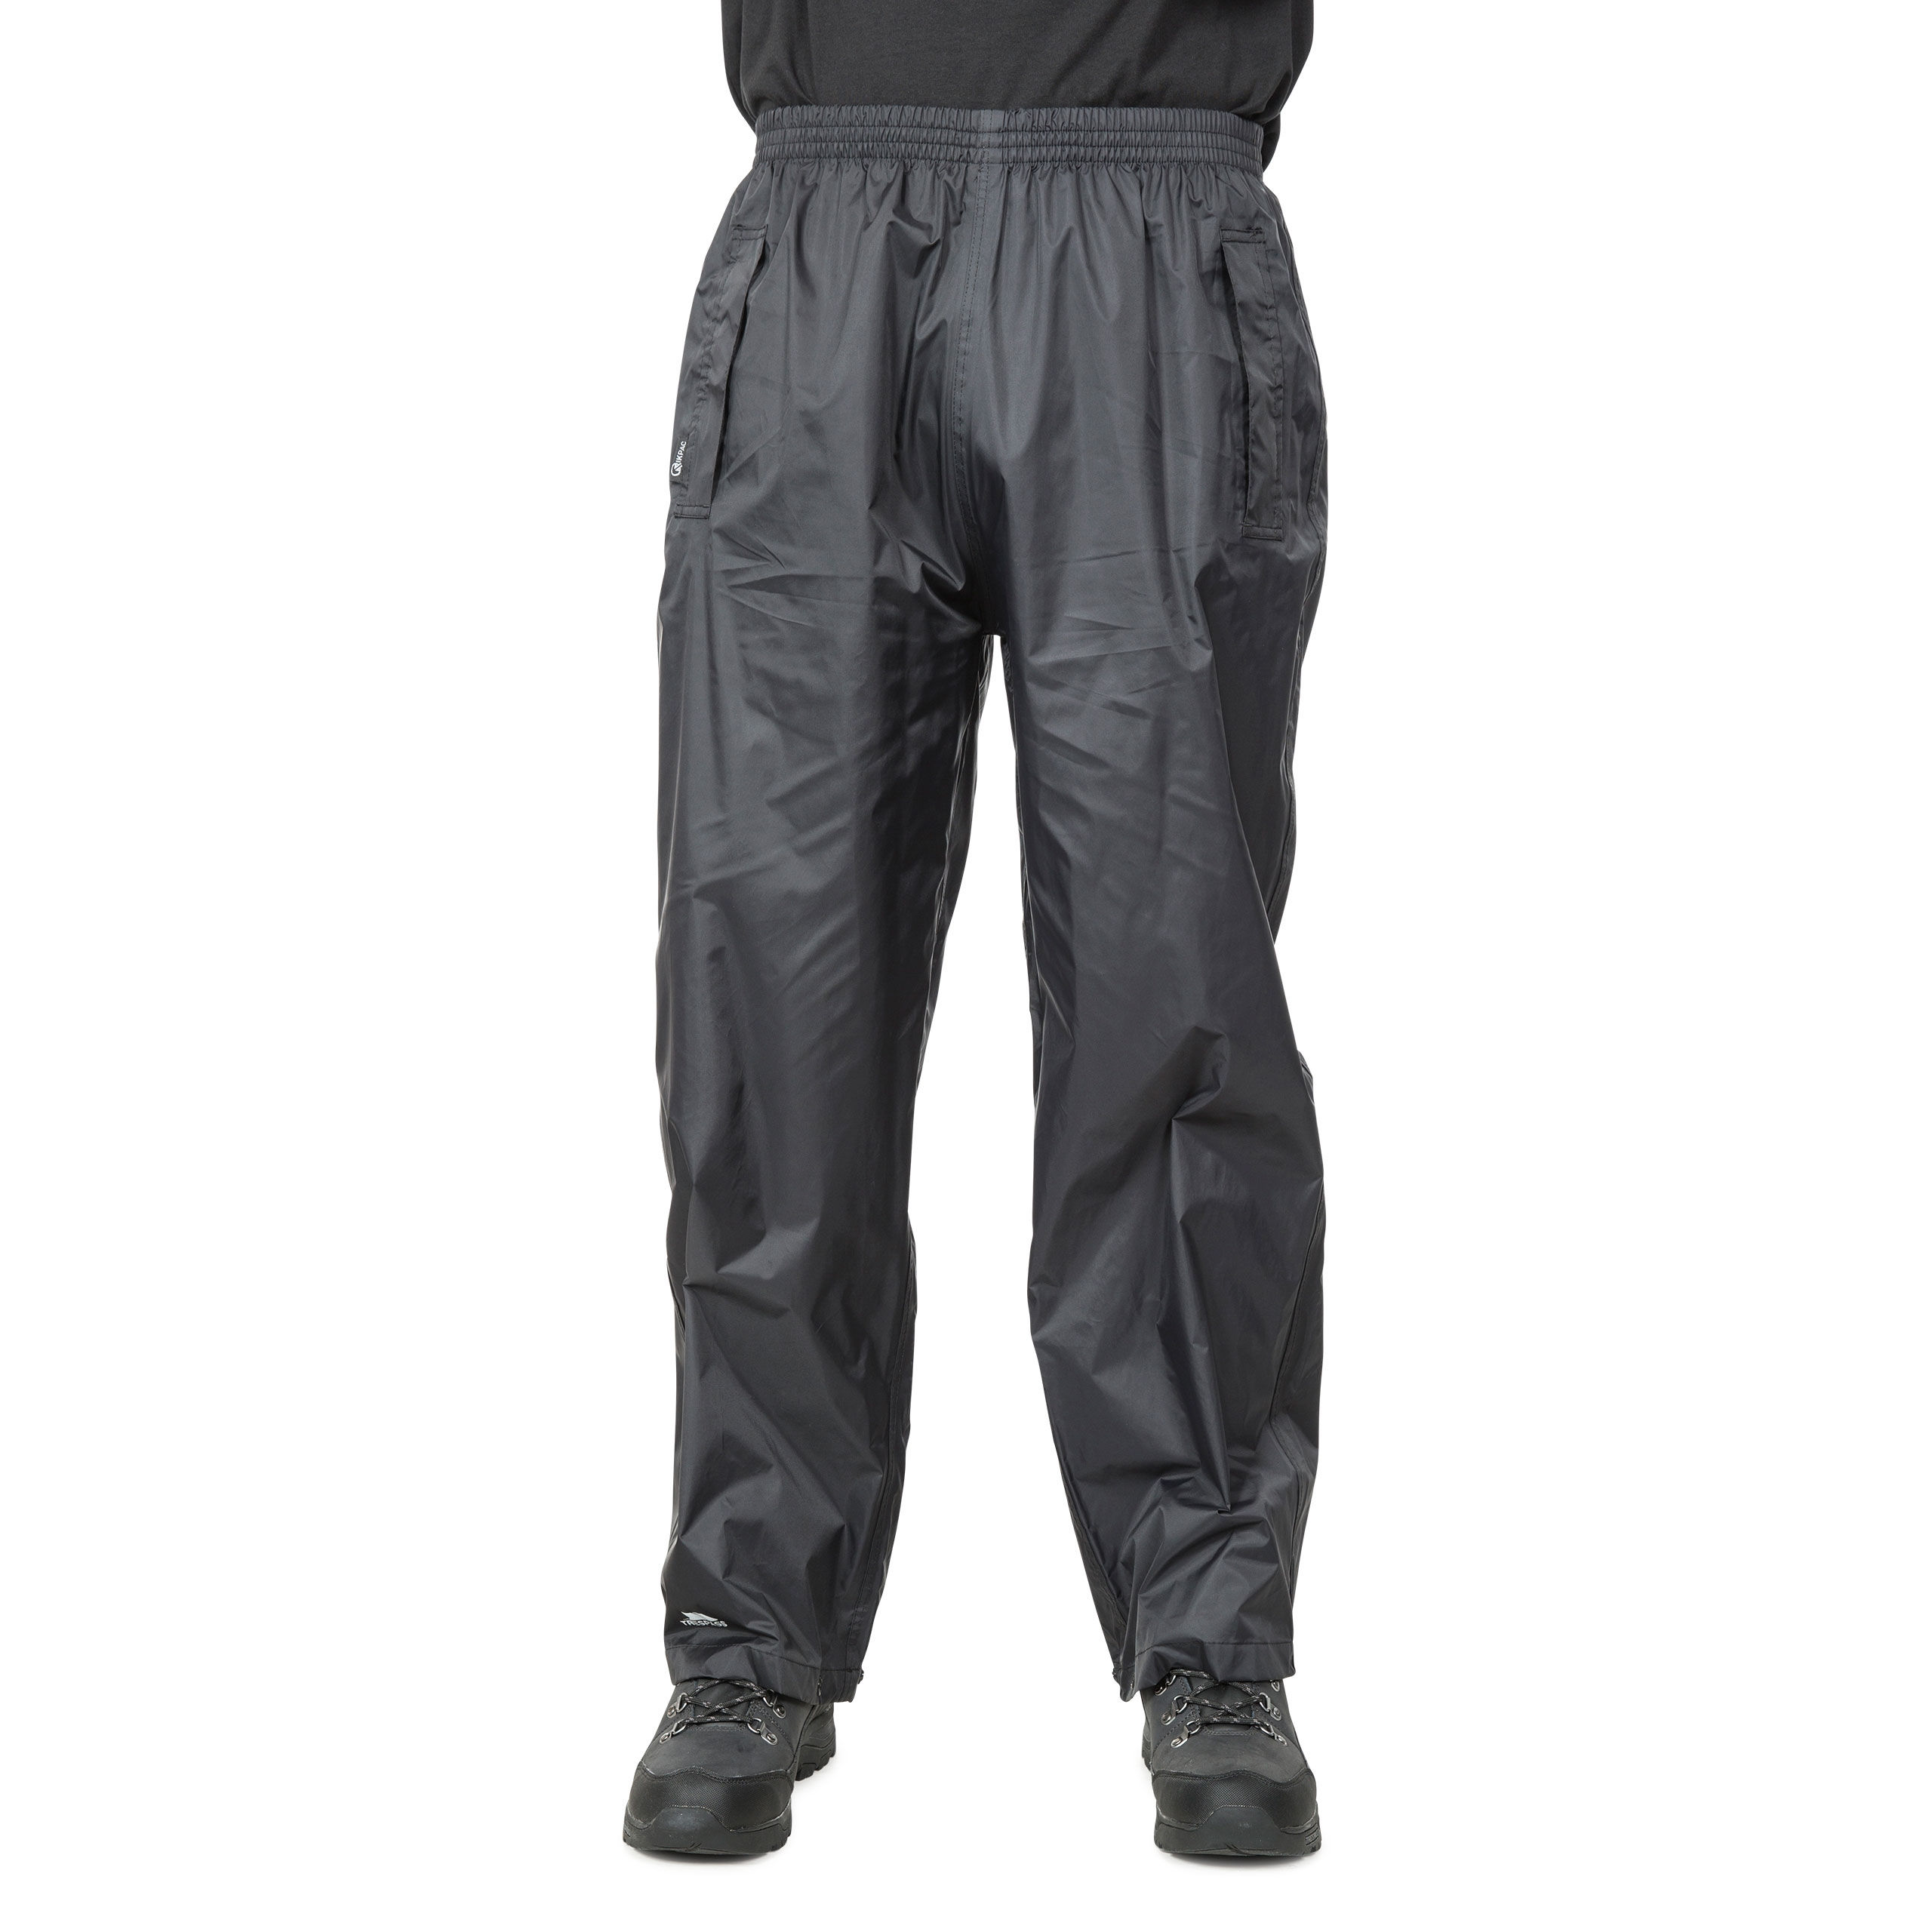 Trespass-Mens-Womens-Waterproof-Trousers-Packaway-Breathable-Qikpac thumbnail 6